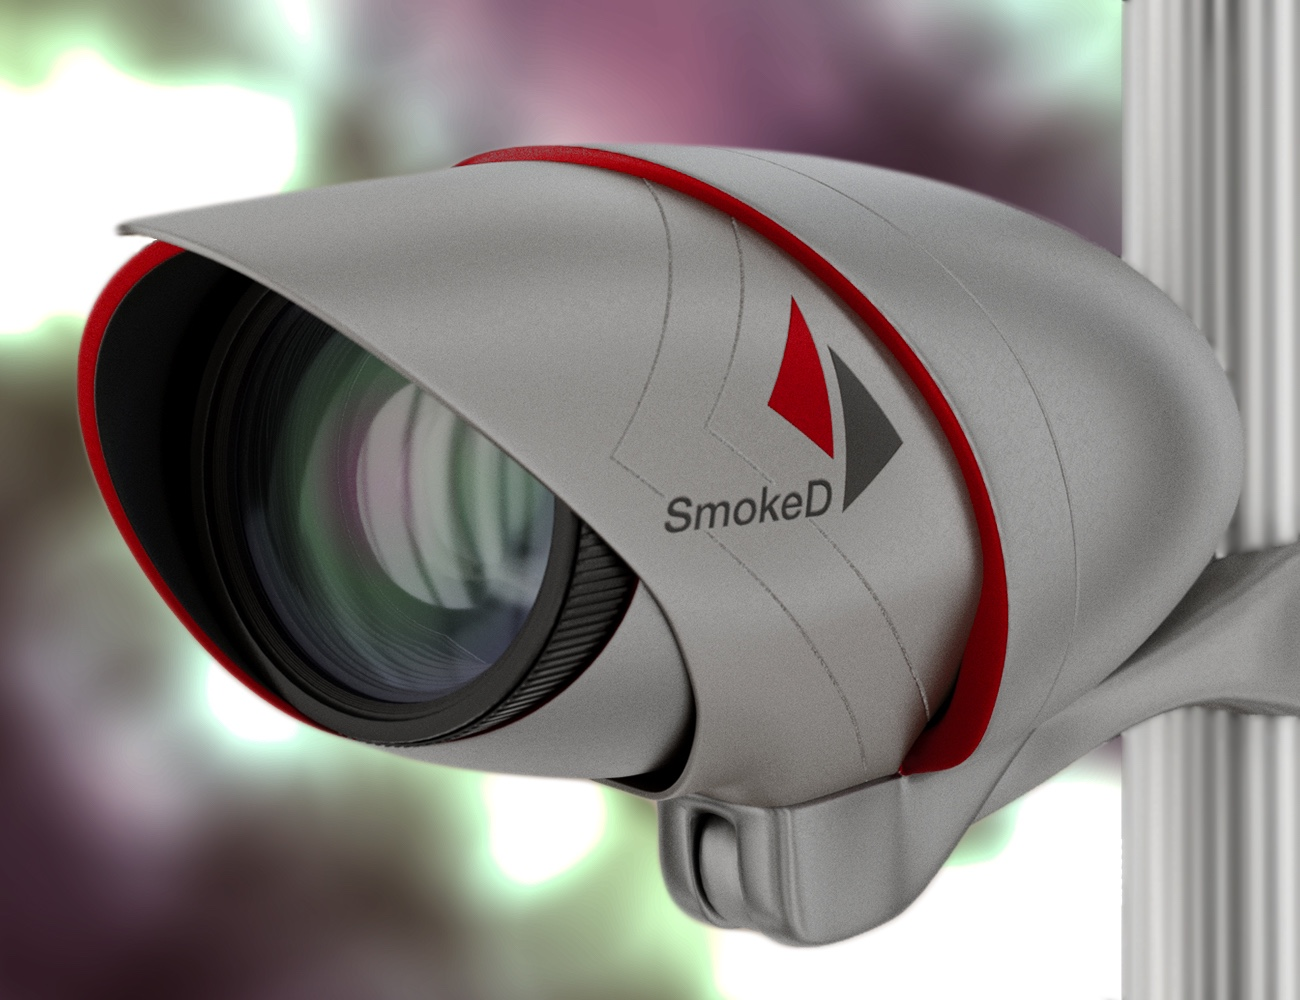 SmokeD+Smart+Fire+Detection+Camera